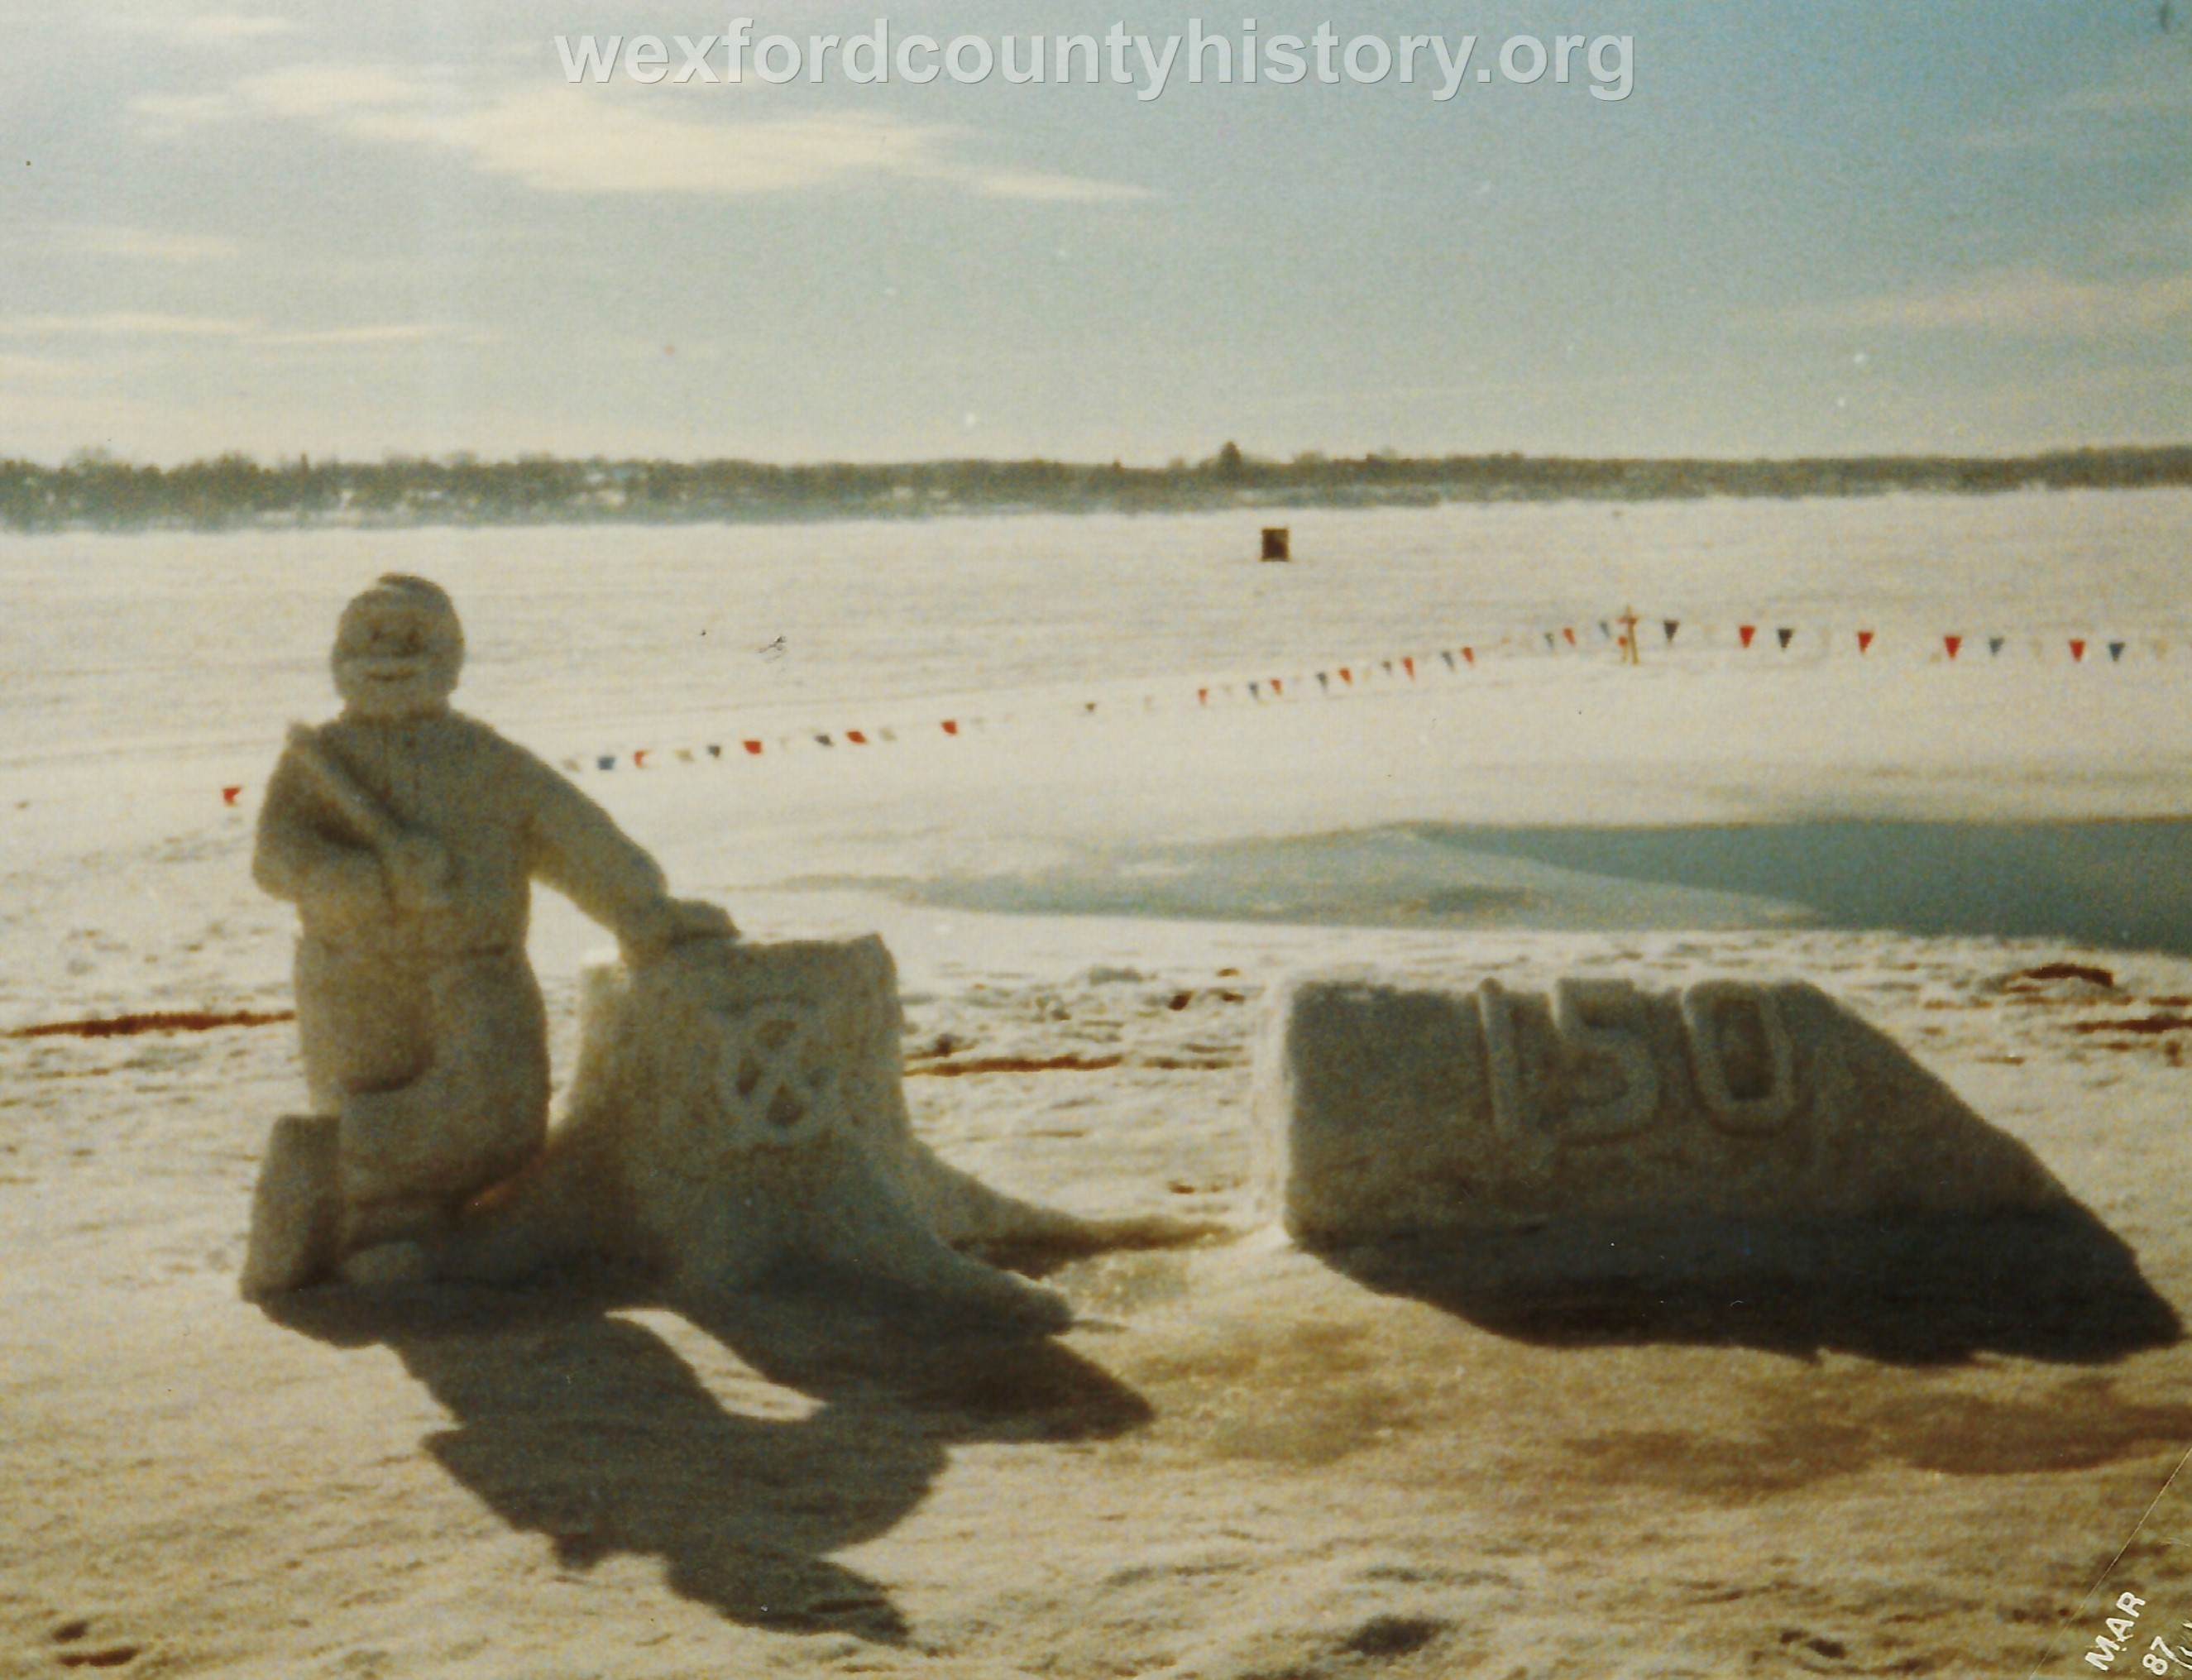 Cadillac-Recreation-Ice-Sculptures-On-Lake-Cadillac-For-Snowmobile-Festival-1